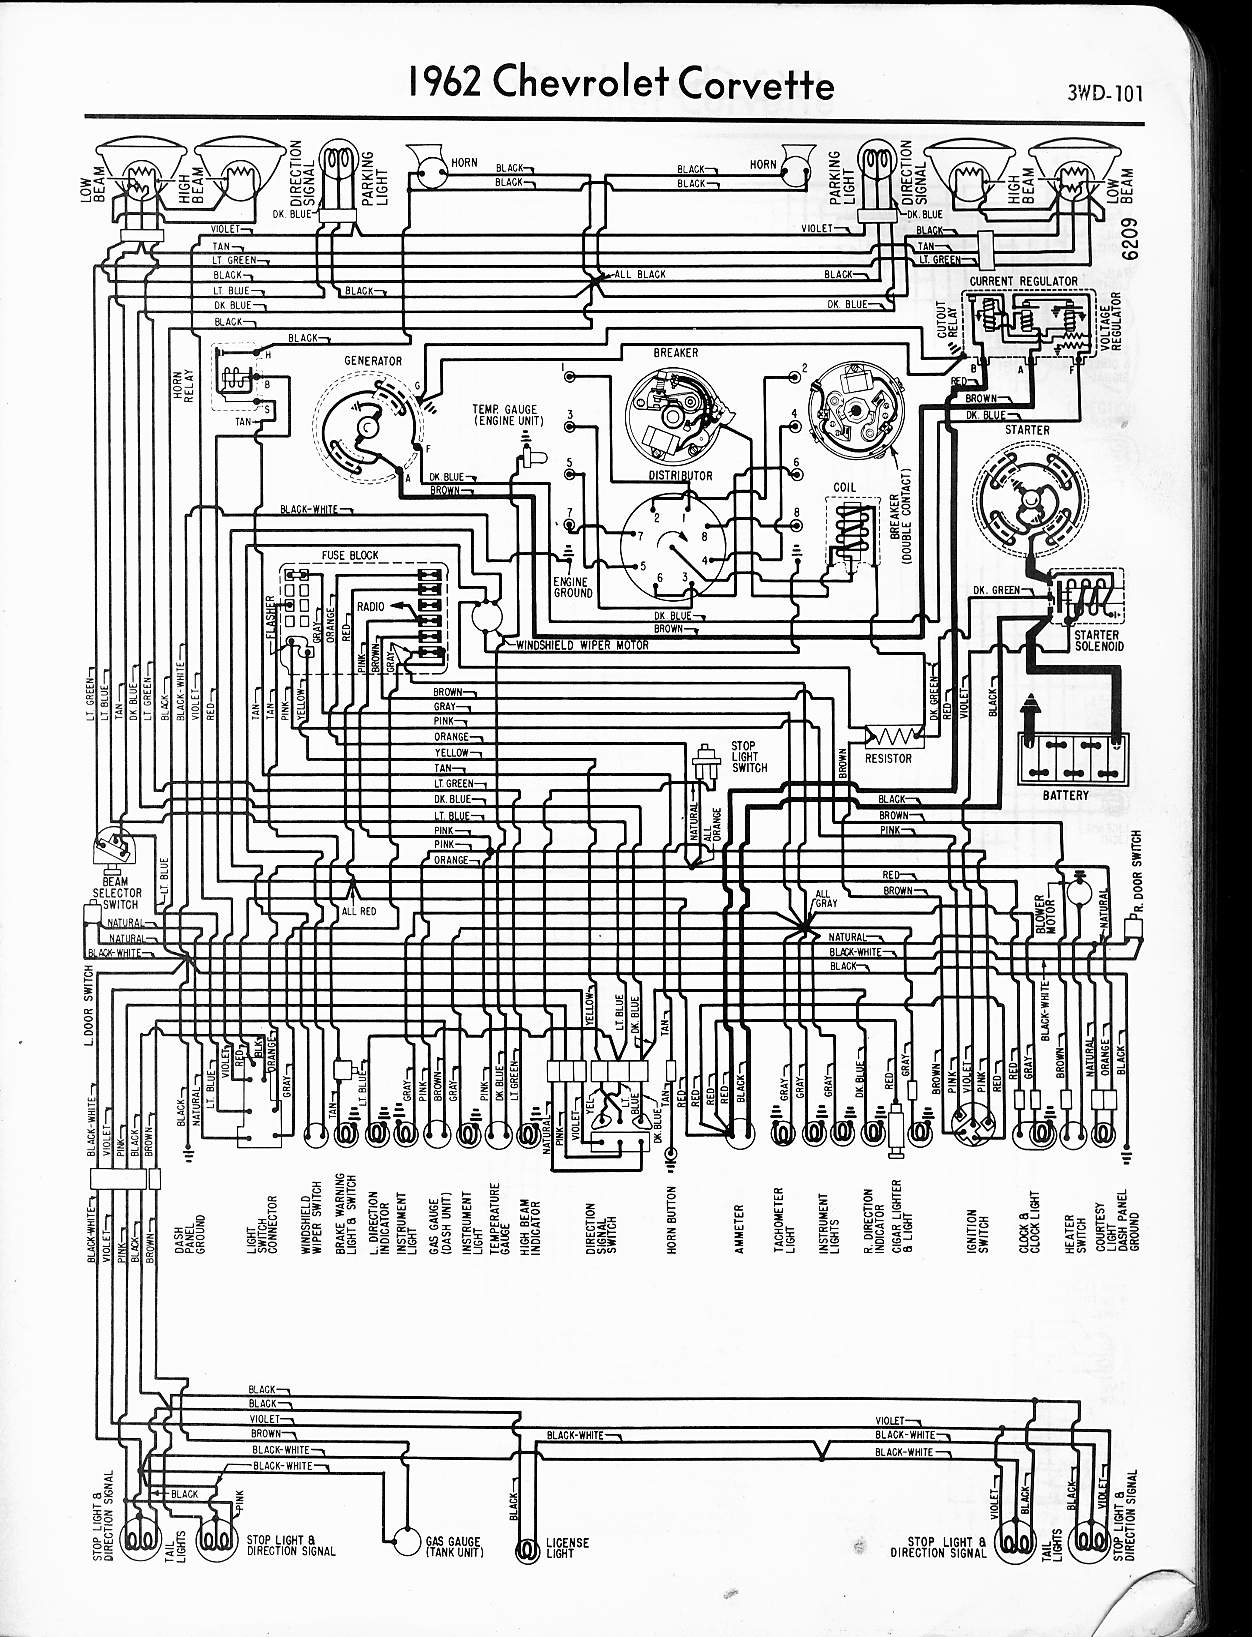 hight resolution of 1962 chevy wiring diagram wiring diagram details57 65 chevy wiring diagrams 1962 chevy nova wiring diagram